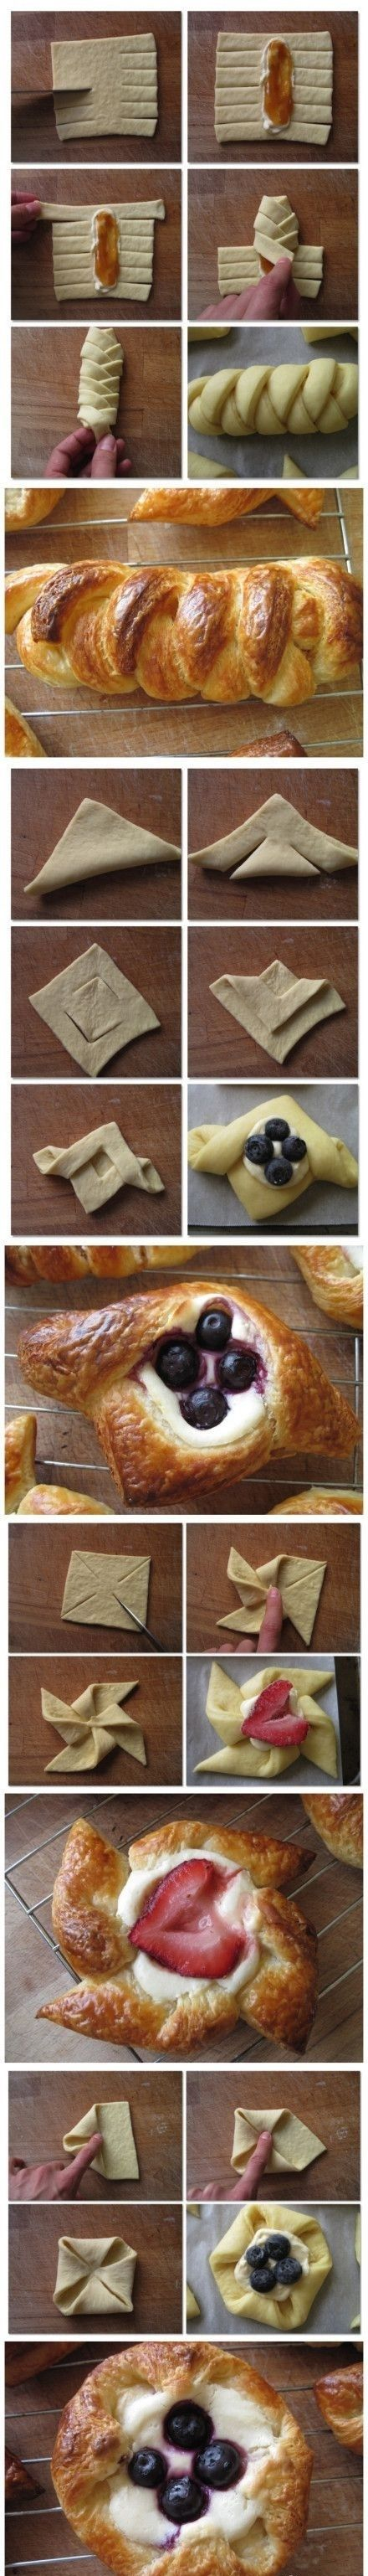 How to fold puff pastry